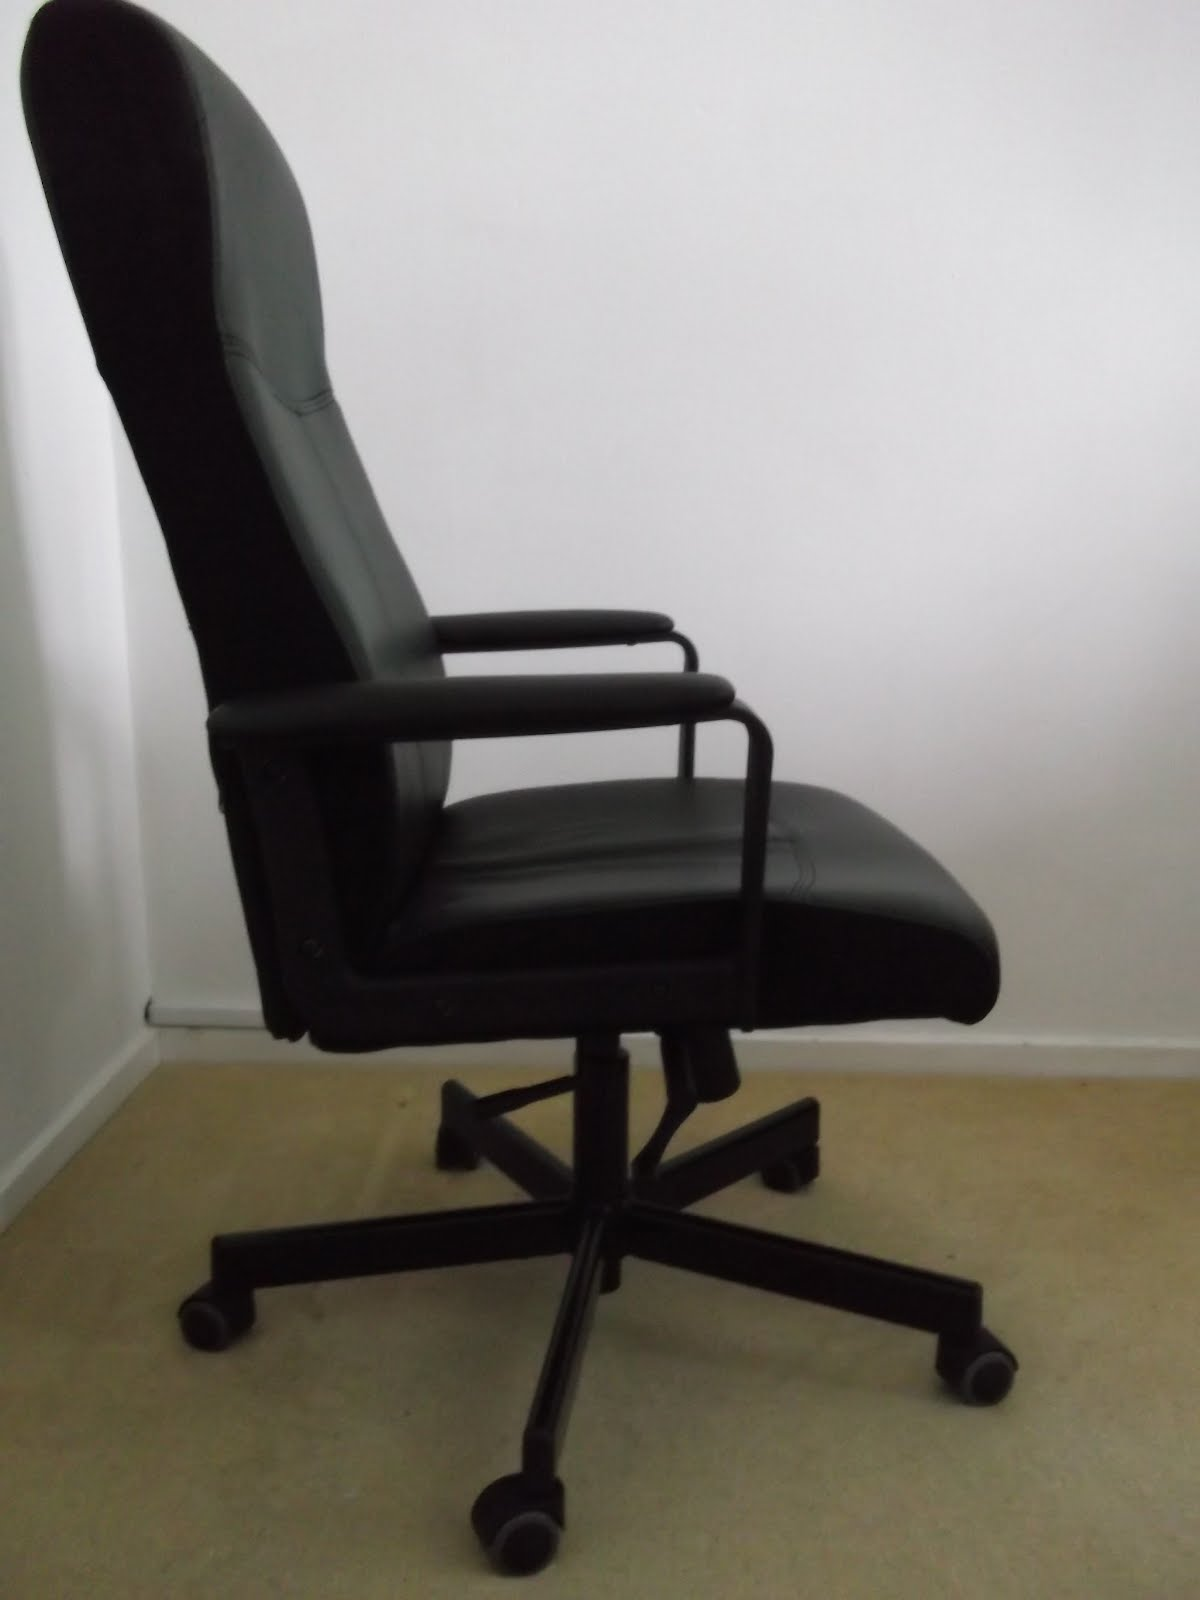 ikea uk office. Ikea Malkolm Office Swivel Chair Uk C